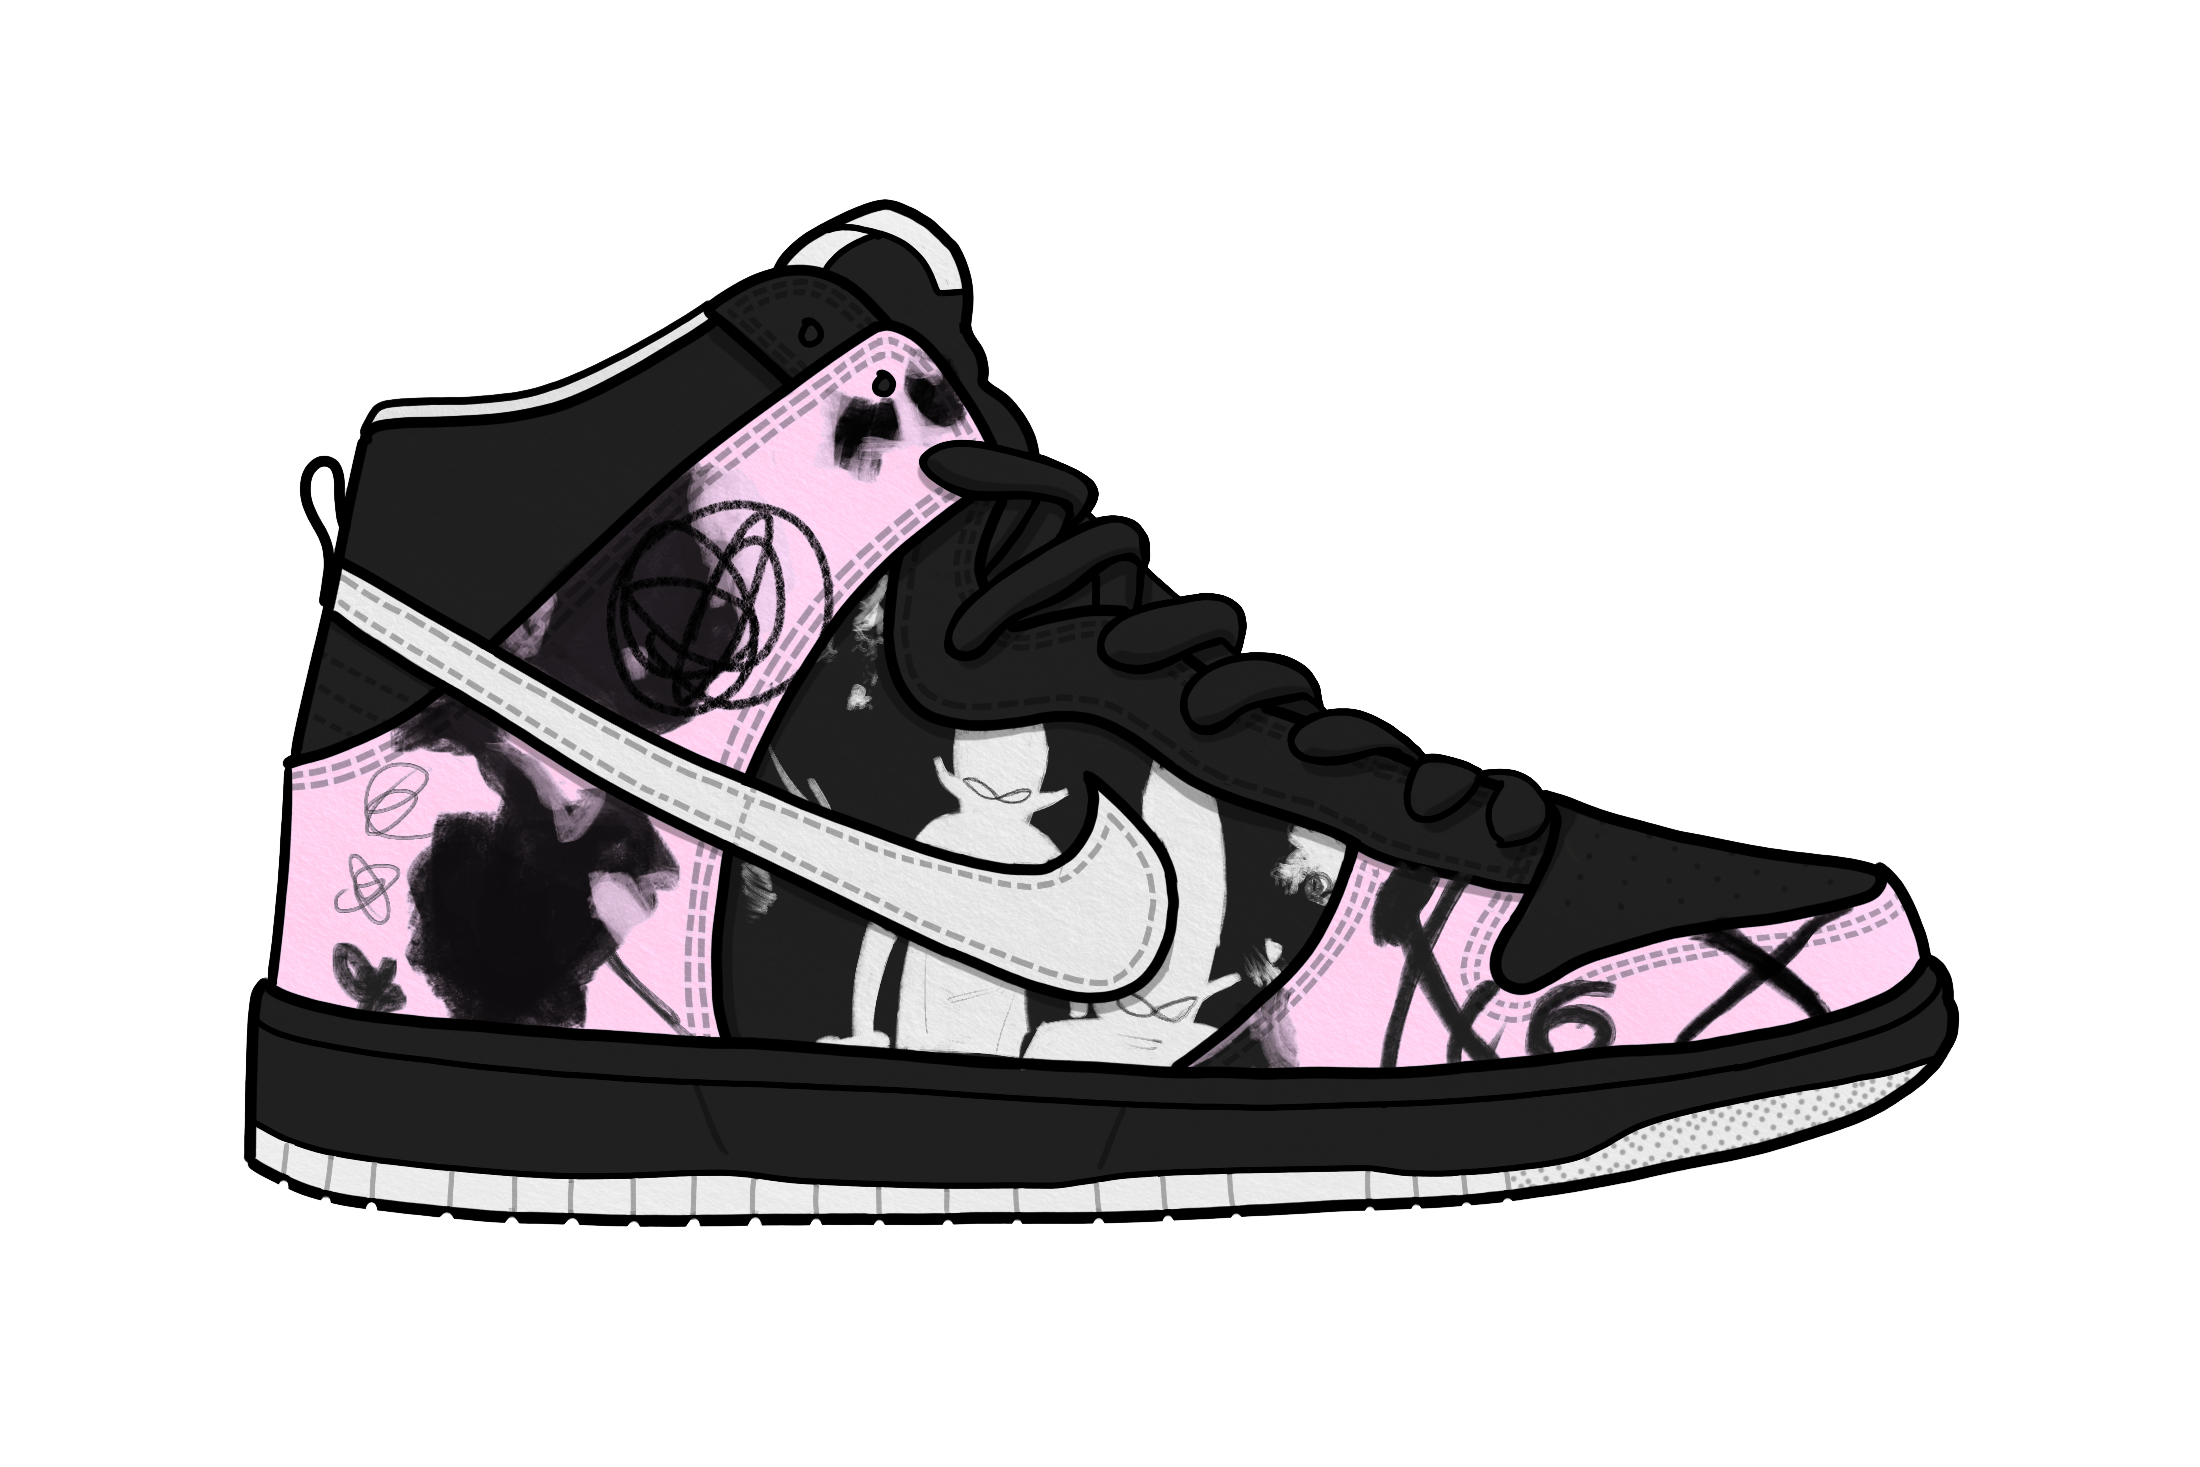 Transparent nikes silhouette. Most iconic nike sbs